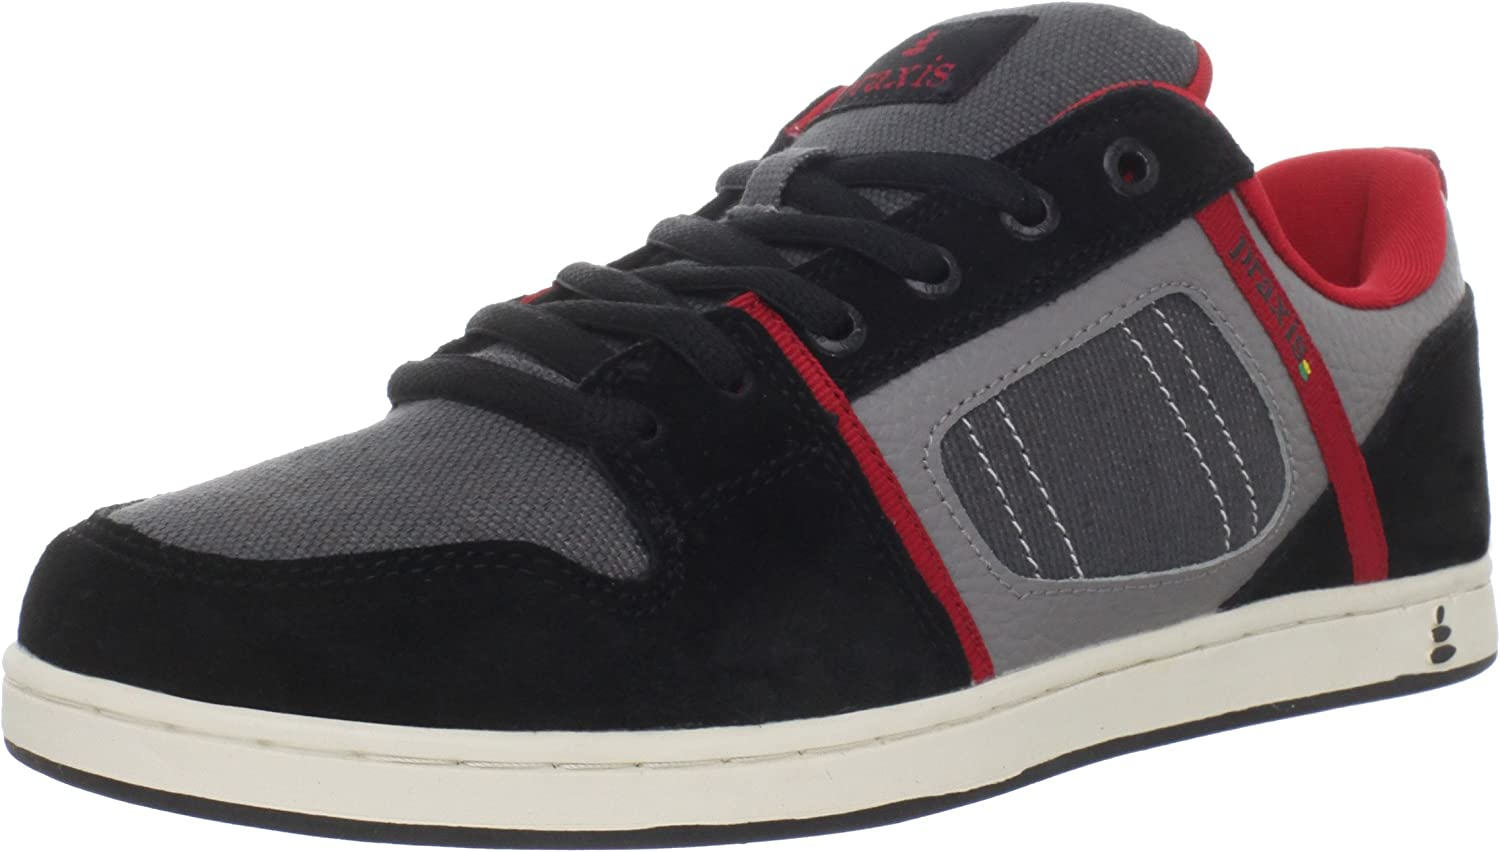 Praxis Men s Core Skate Shoe